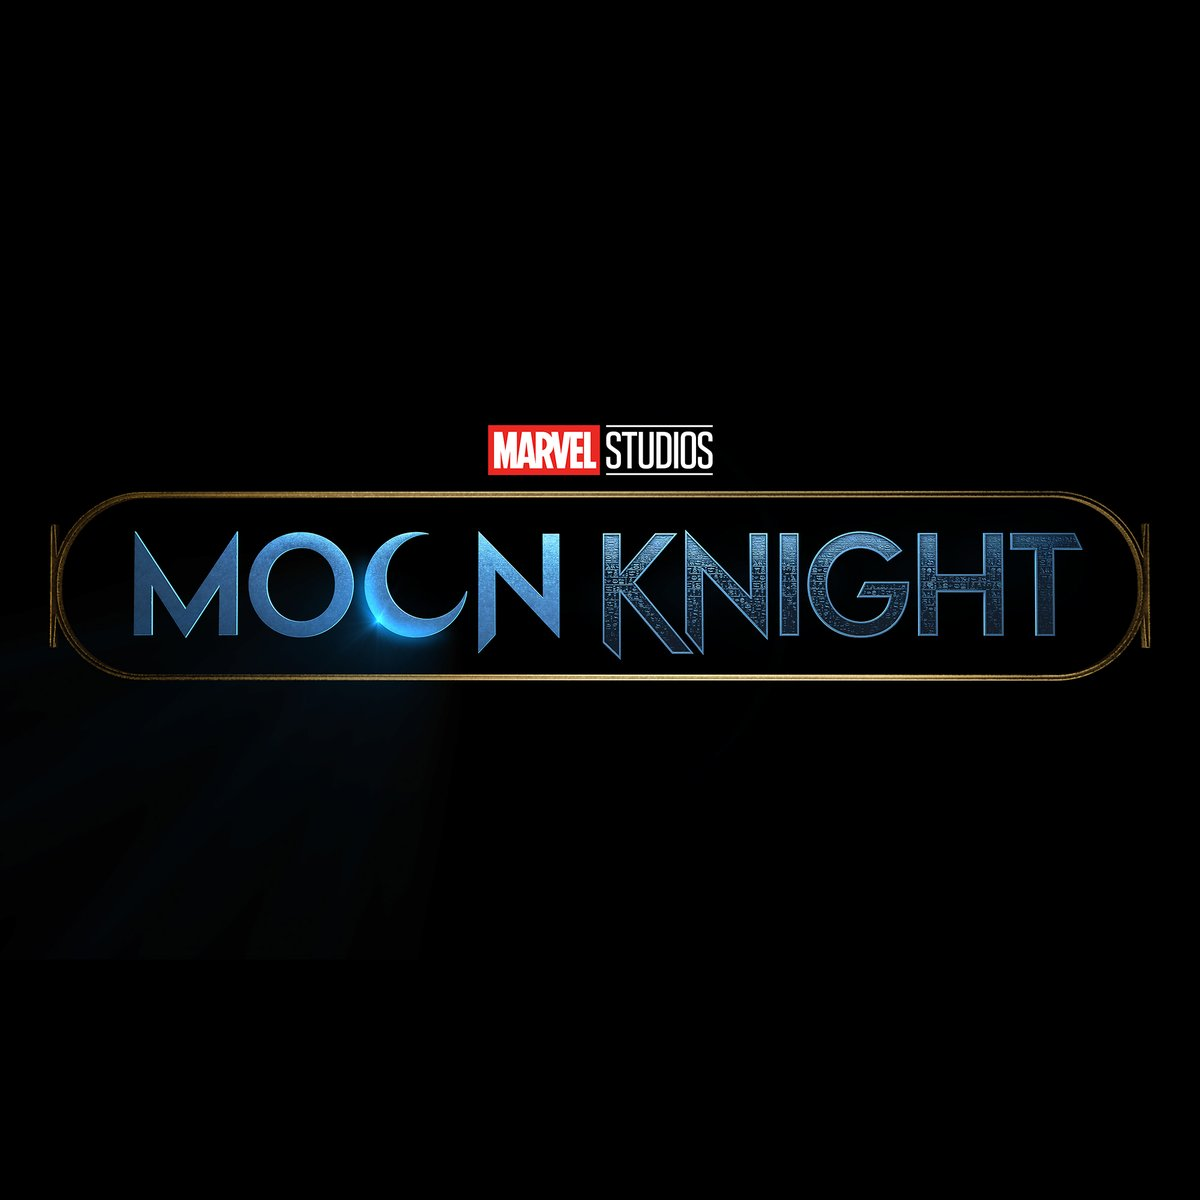 Moon Knight, an Original Series about a complex vigilante, is coming to @DisneyPlus. 🌙